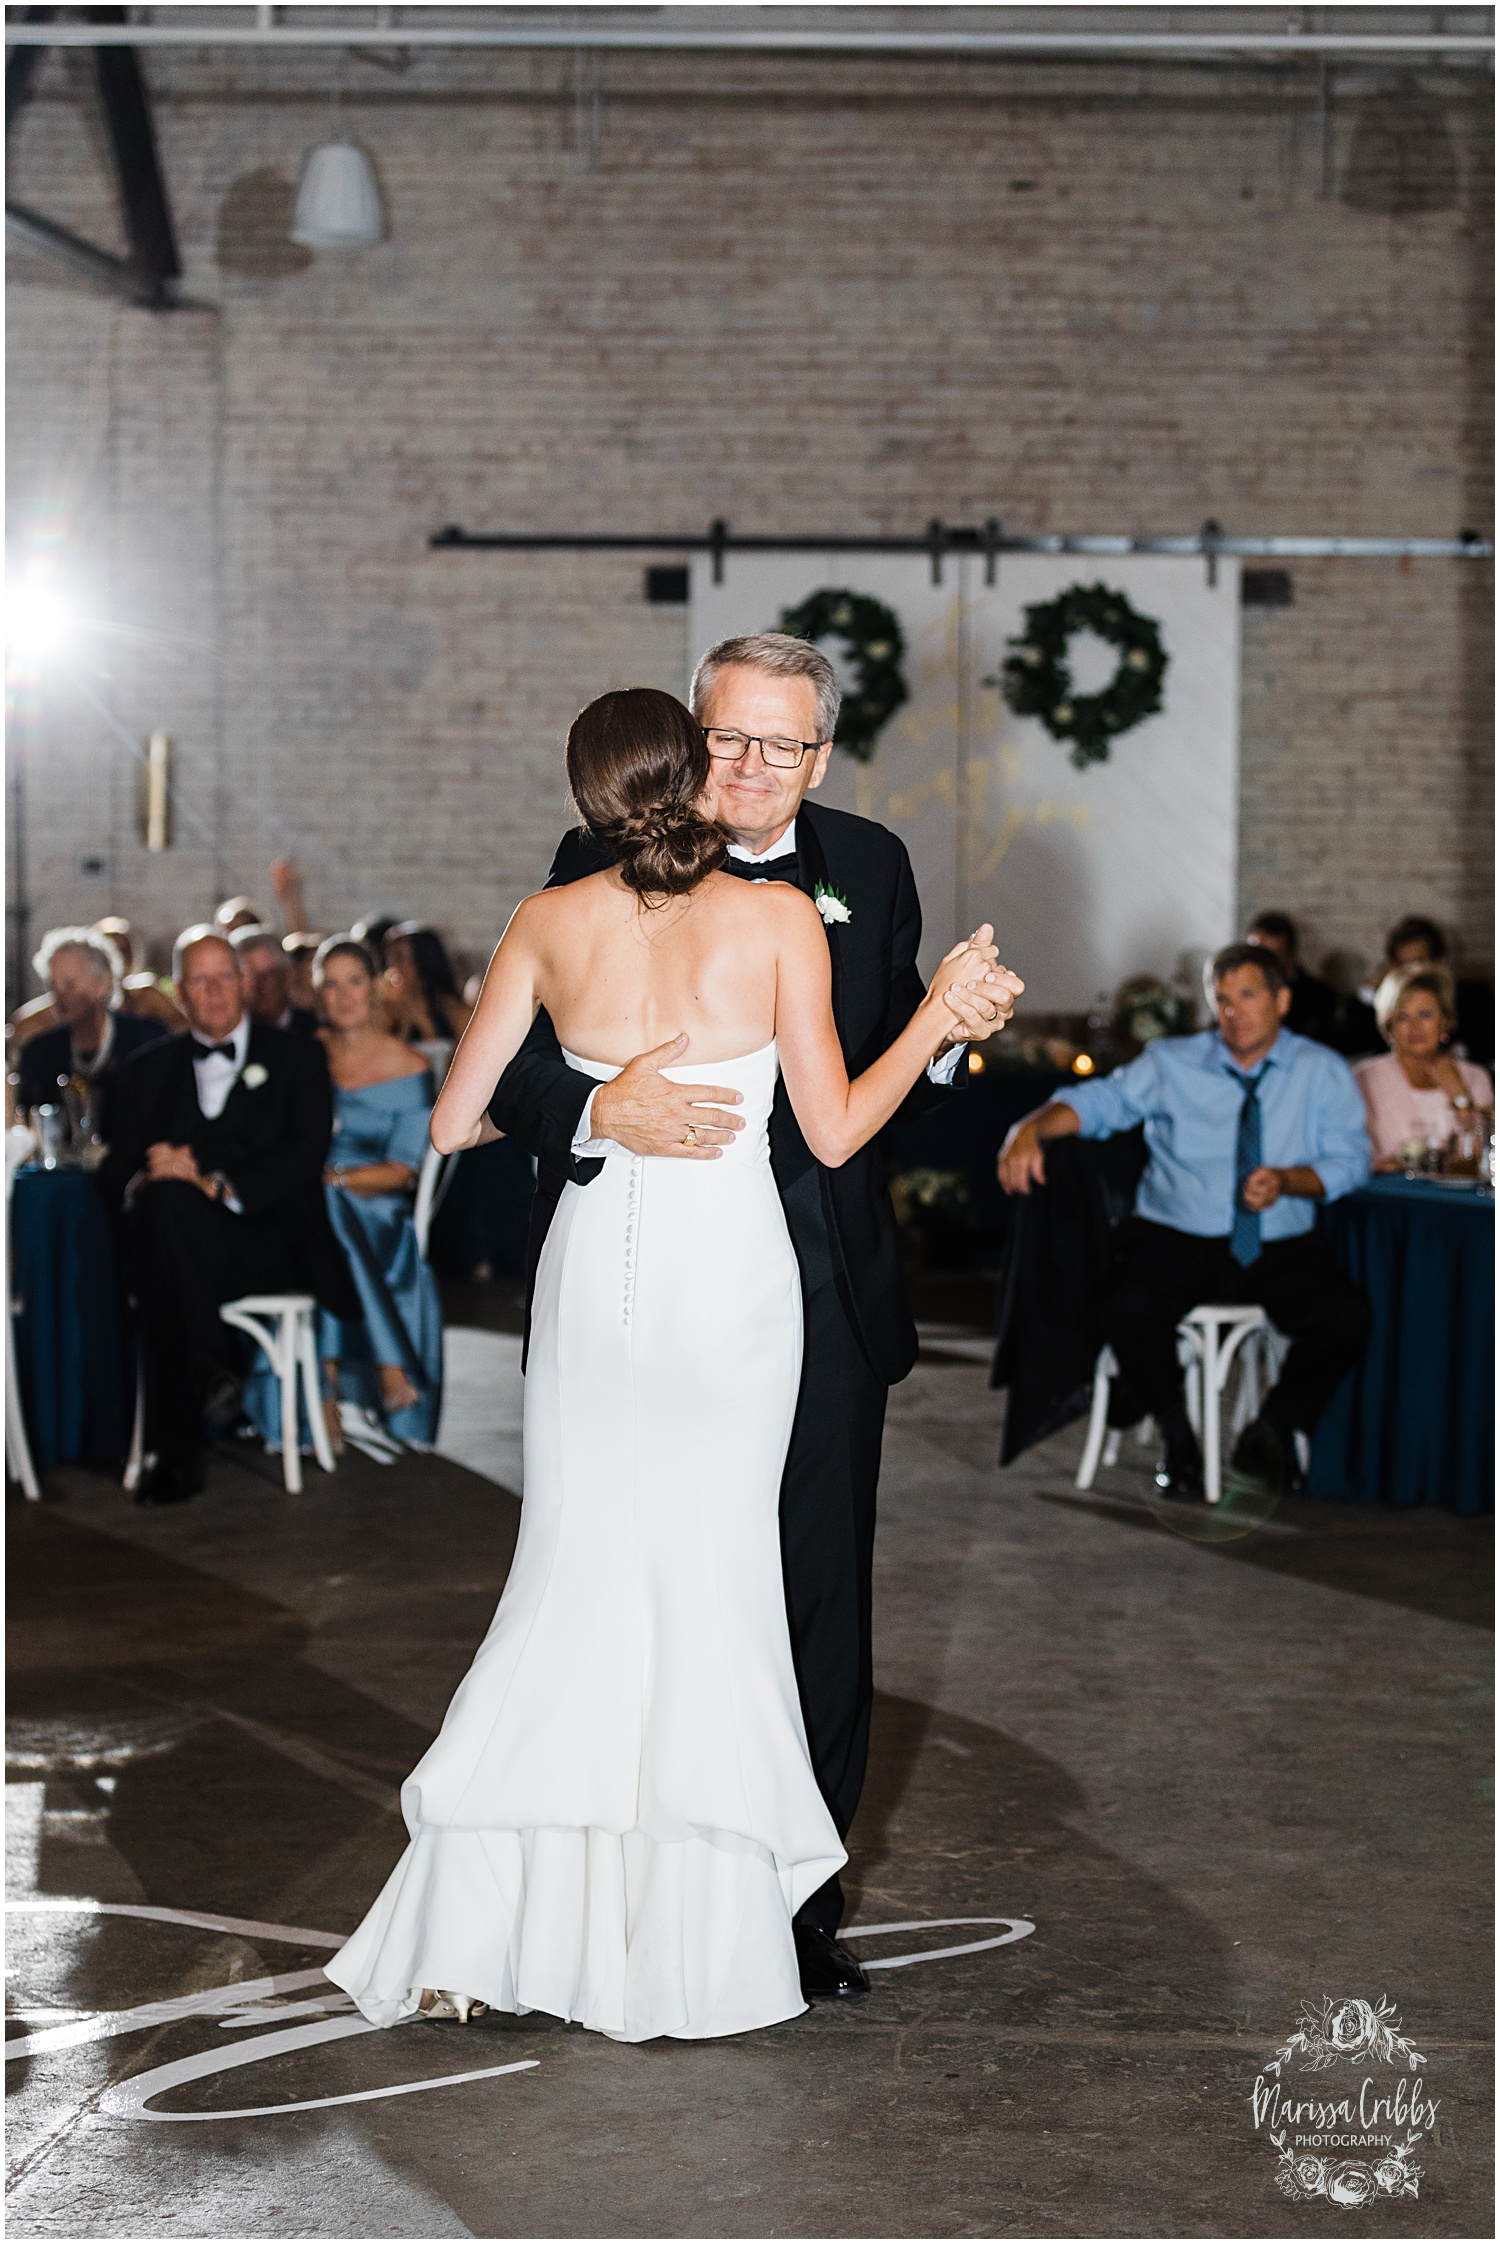 JOANNE & GEORGE MARRIED BLOG | MARISSA CRIBBS PHOTOGRAPHY | THE ABBOTT | KANSAS CITY WEDDING PHOTOS_9185.jpg